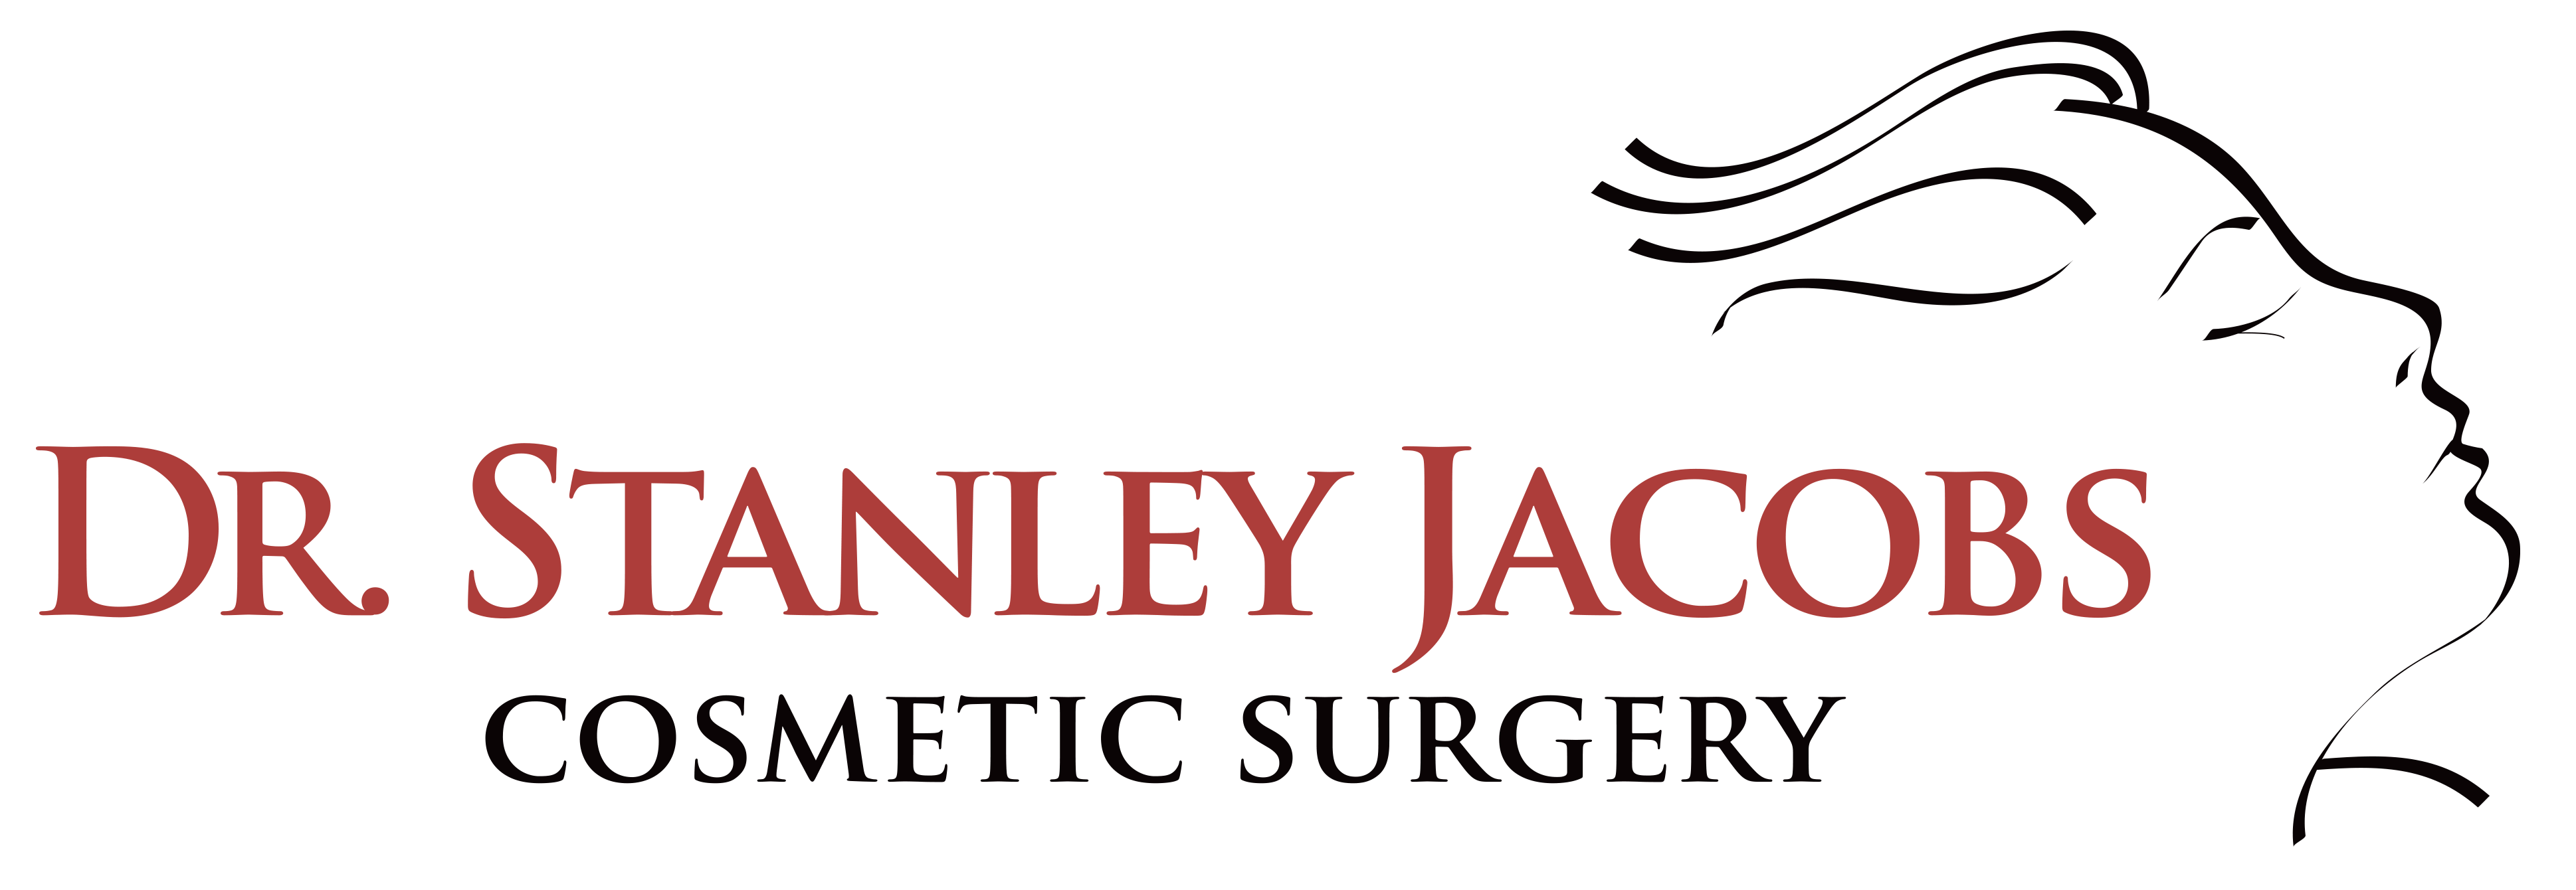 Dr. Stanley Jacobs